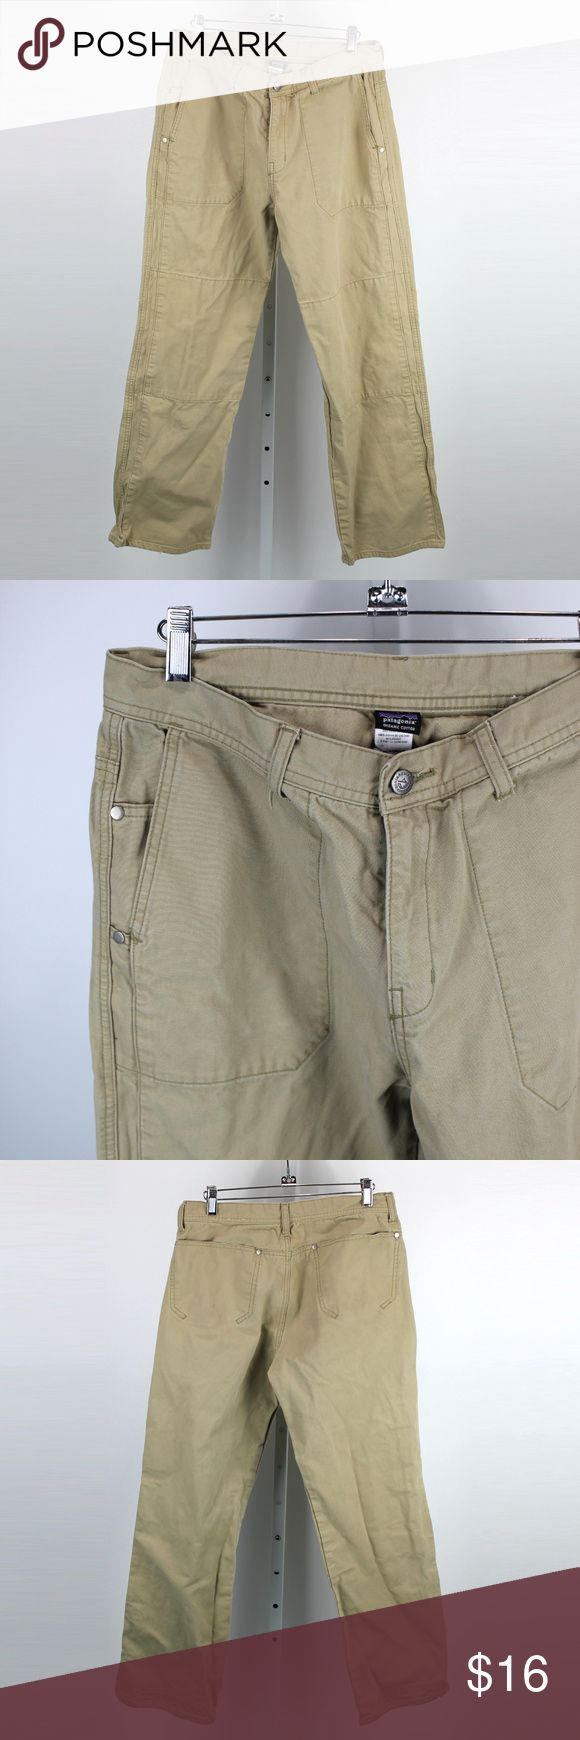 """Patagonia Mens 100% Organic Cotton Work Pants - 32 Mens work pants from Patagonia, and made with 100% organic cotton.  They are size 32 with a 29"""" inseam.  They have front and rear drop in pockets, with knife clip gussets.  They have been worn, and show some wear on the hems, but are in overall good condition. Patagonia Pants"""